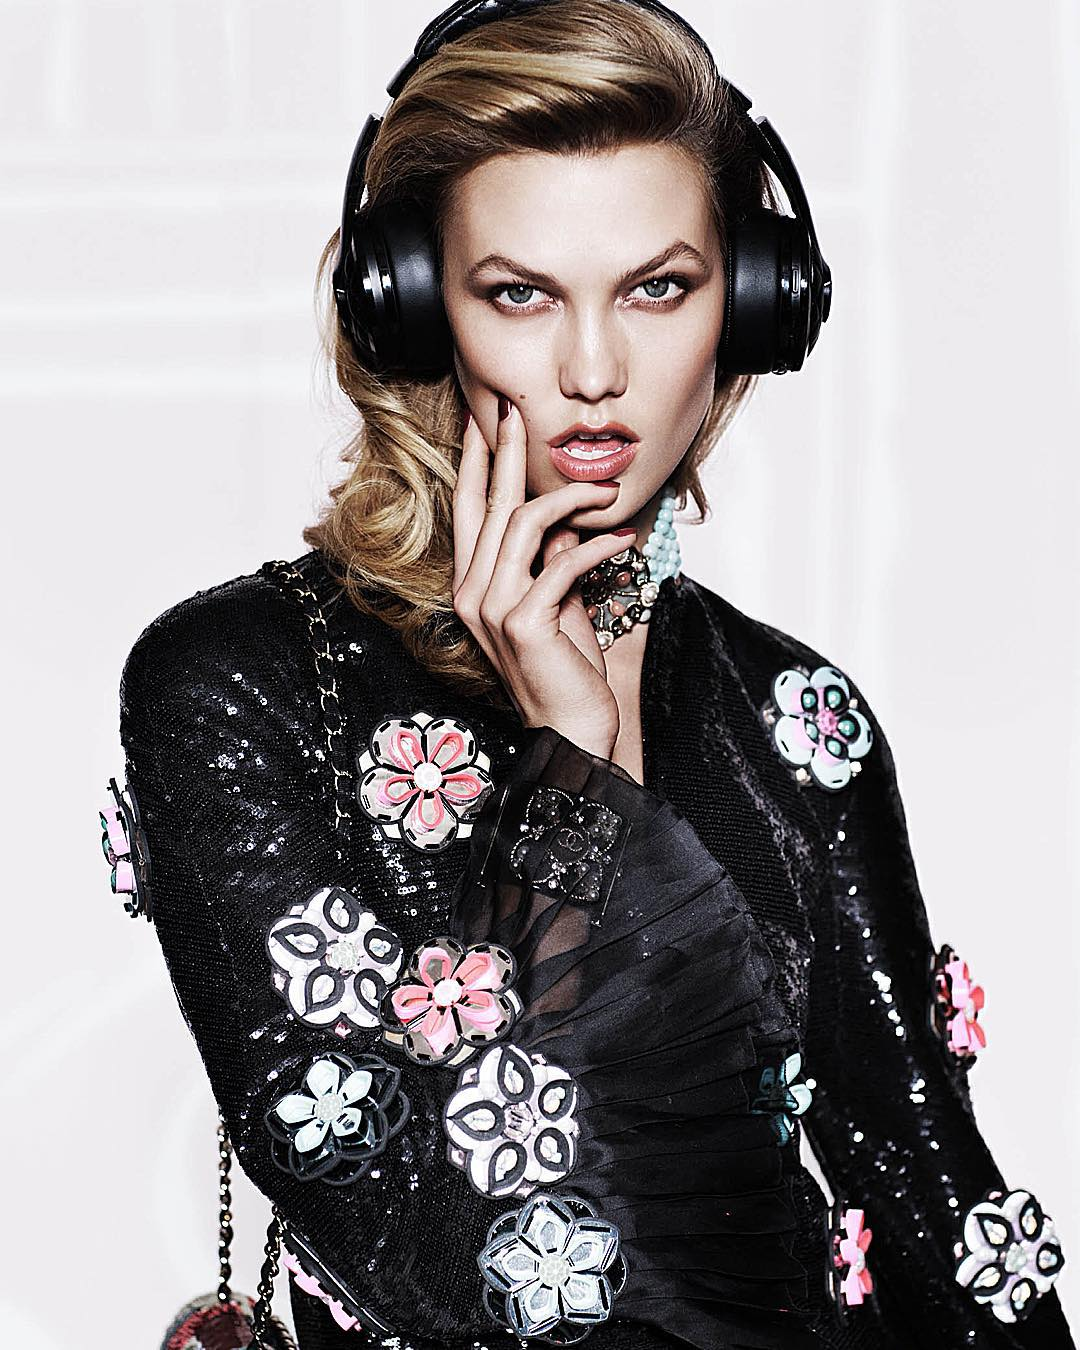 Karlie Kloss for Vogue Mexico December 2015 Issue